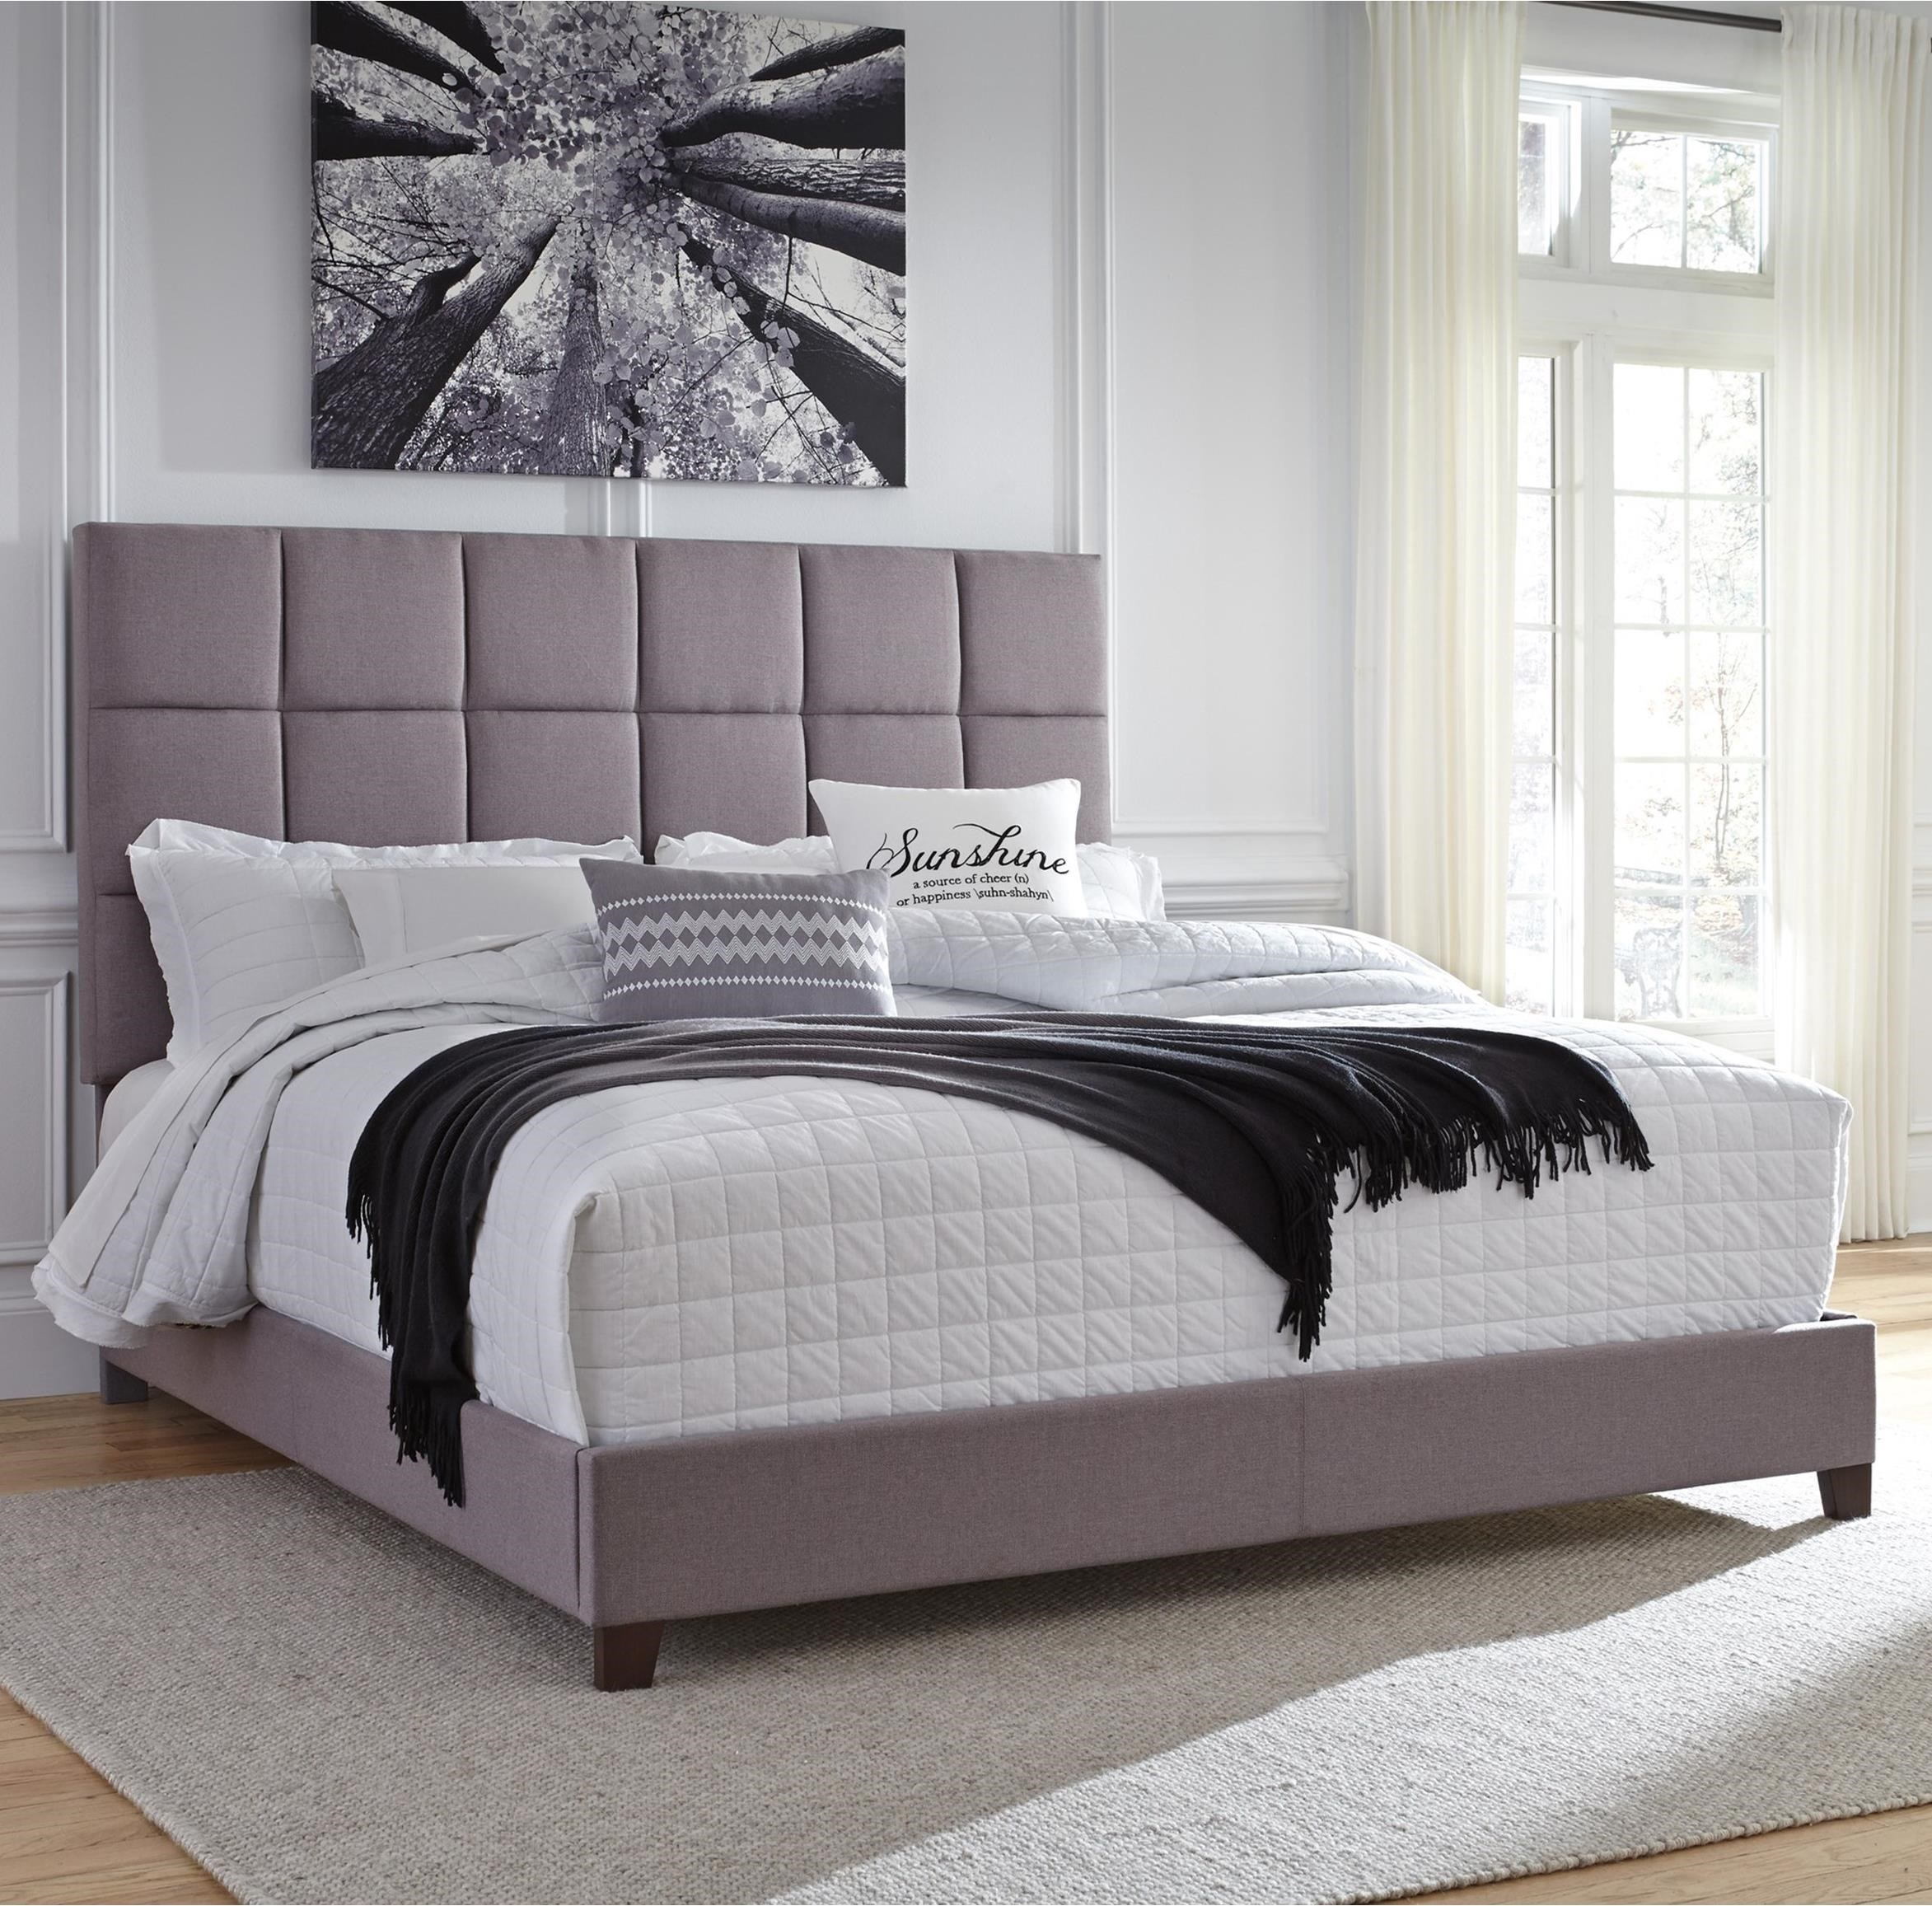 Dolante King Upholstered Bed by Ashley (Signature Design) at Johnny Janosik